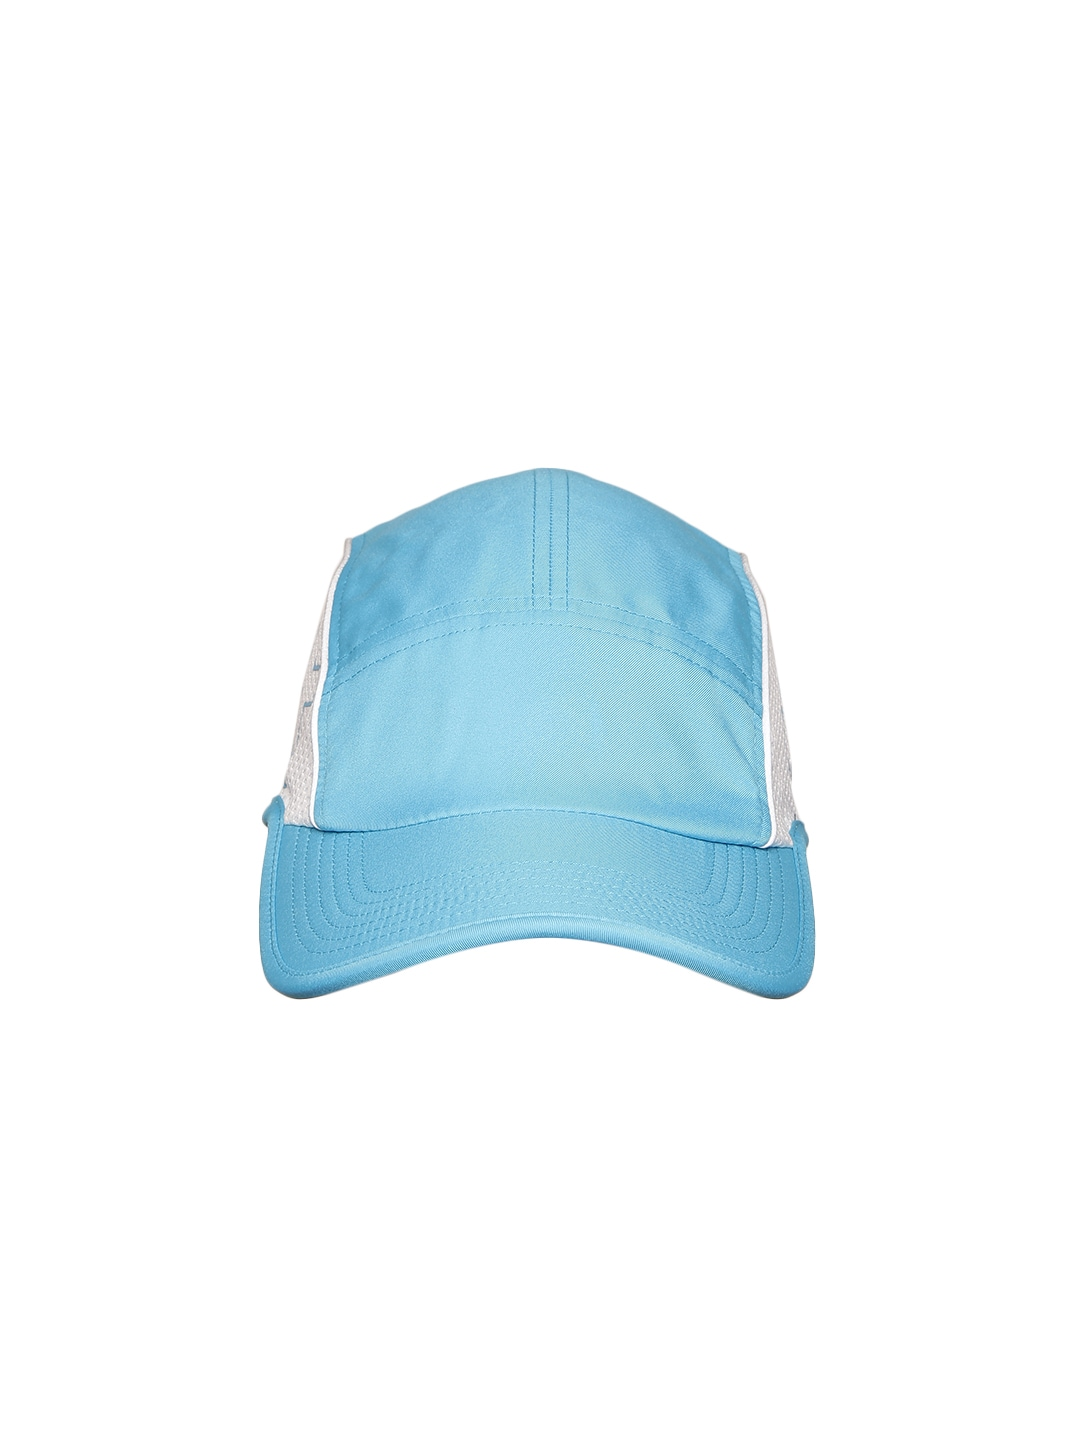 Blue Caps - Buy Blue Caps online in India f31b3970efeb